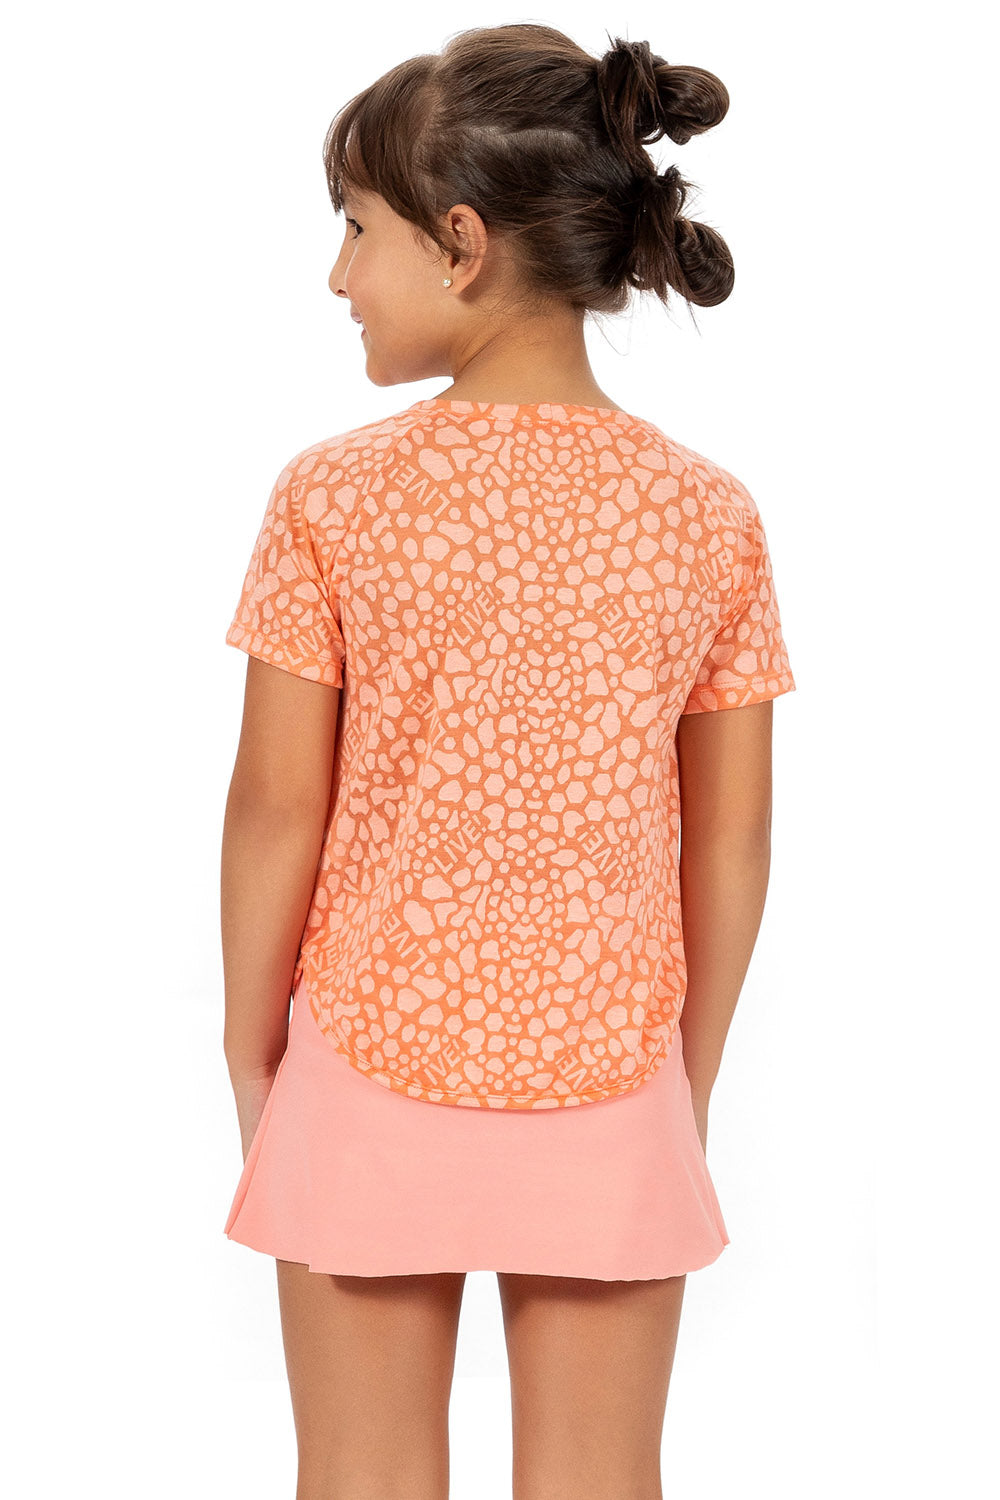 Jump Kids Blouse 2